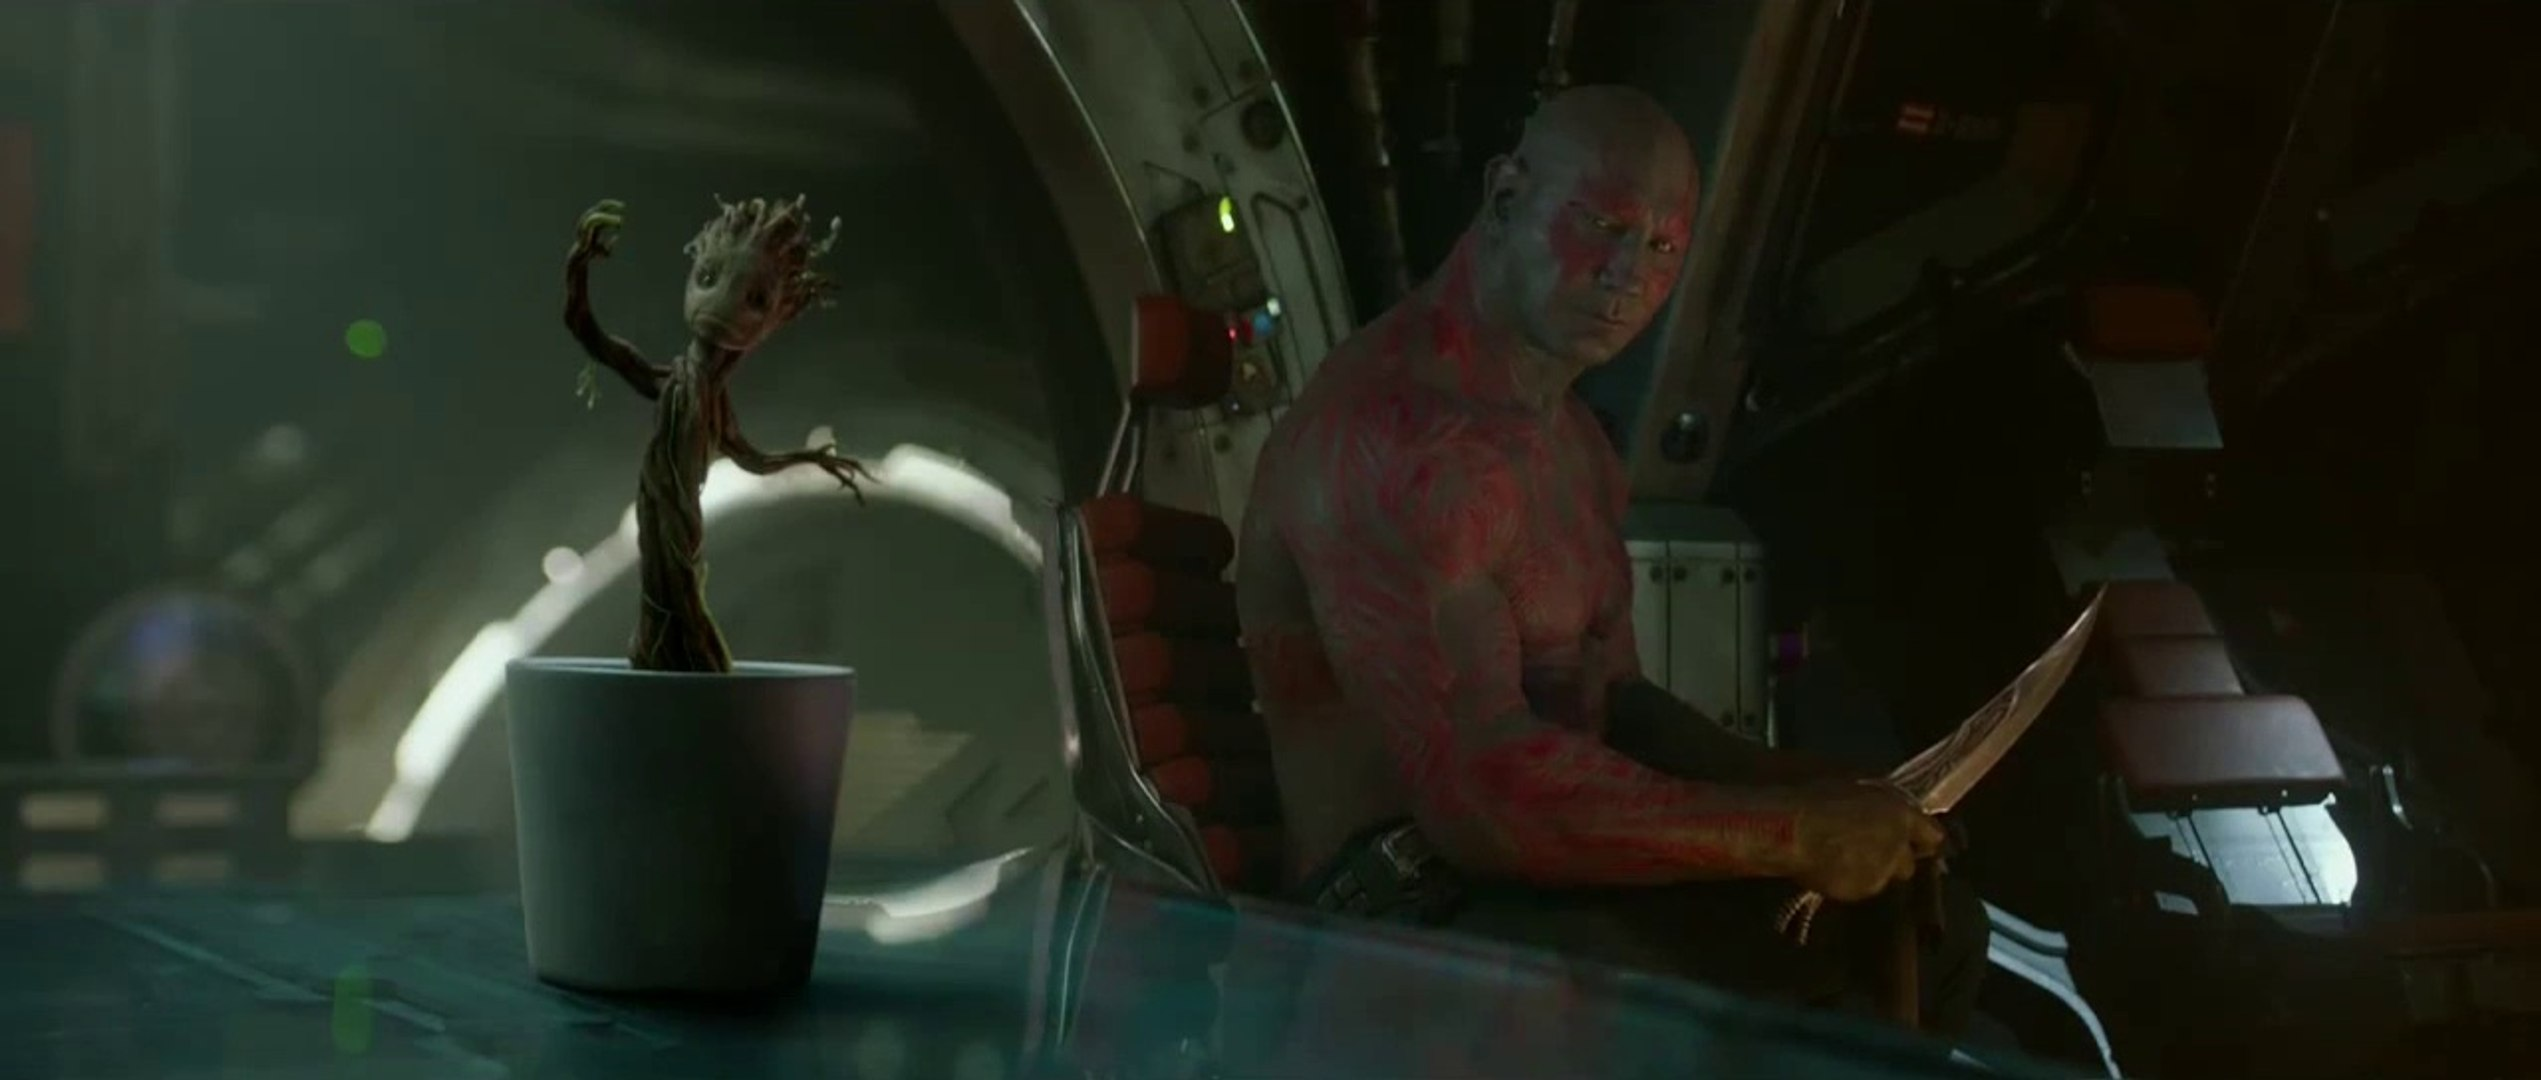 Guardians of the Galaxy Movie CLIP - Dancing Baby Groot